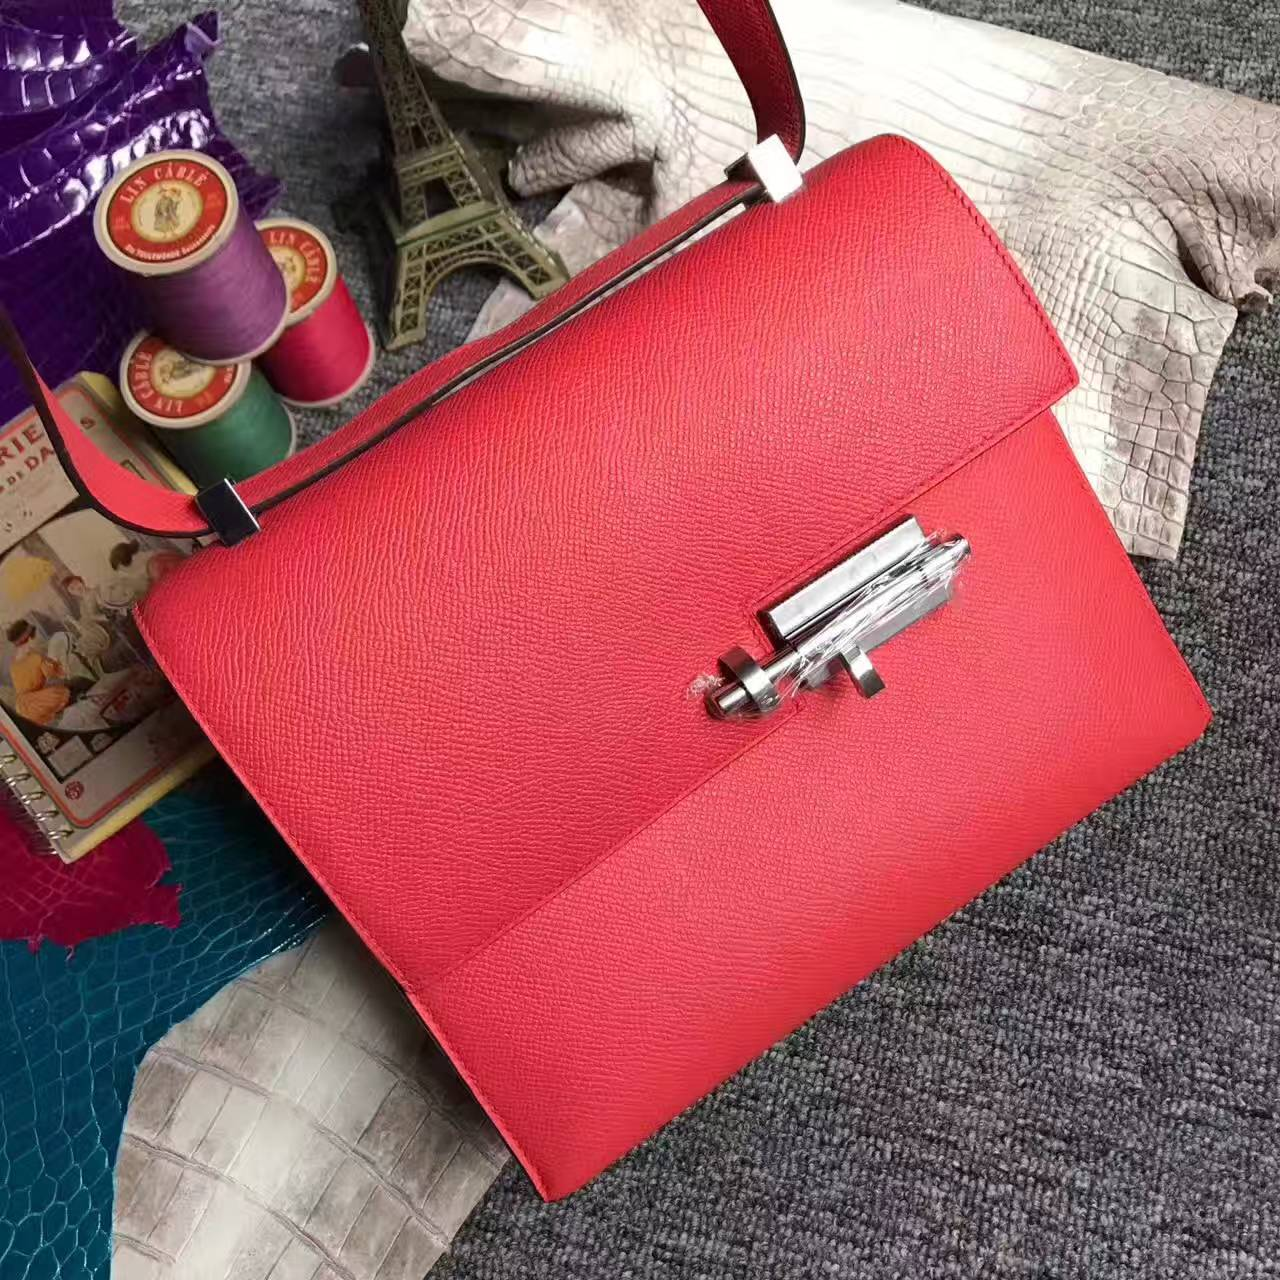 New Fashion Hermes Q5 Rouge Casaque Epsom Leather Verrou Bag 24cm